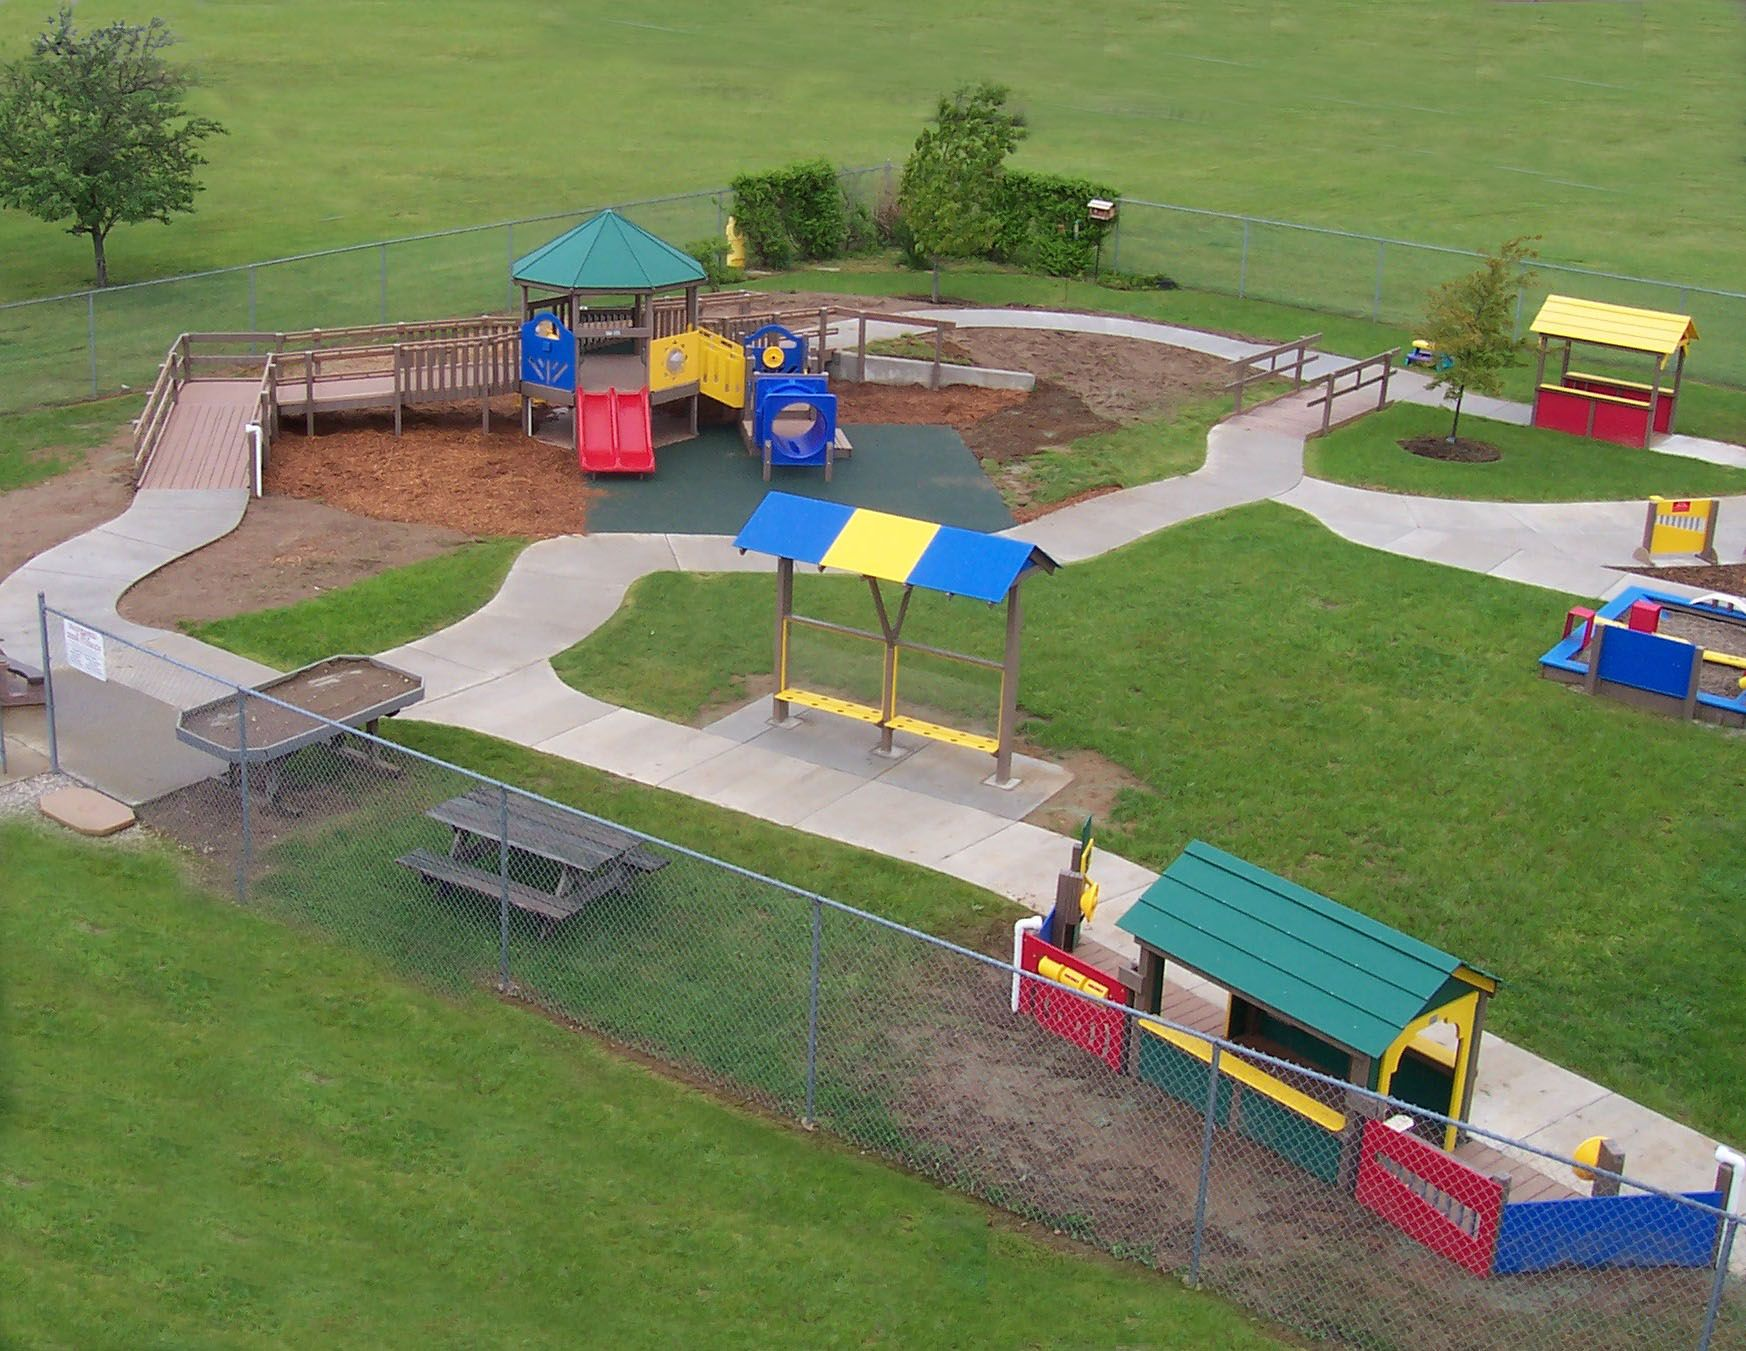 Kindergarten Yard Design: Preschool Playground Amenities